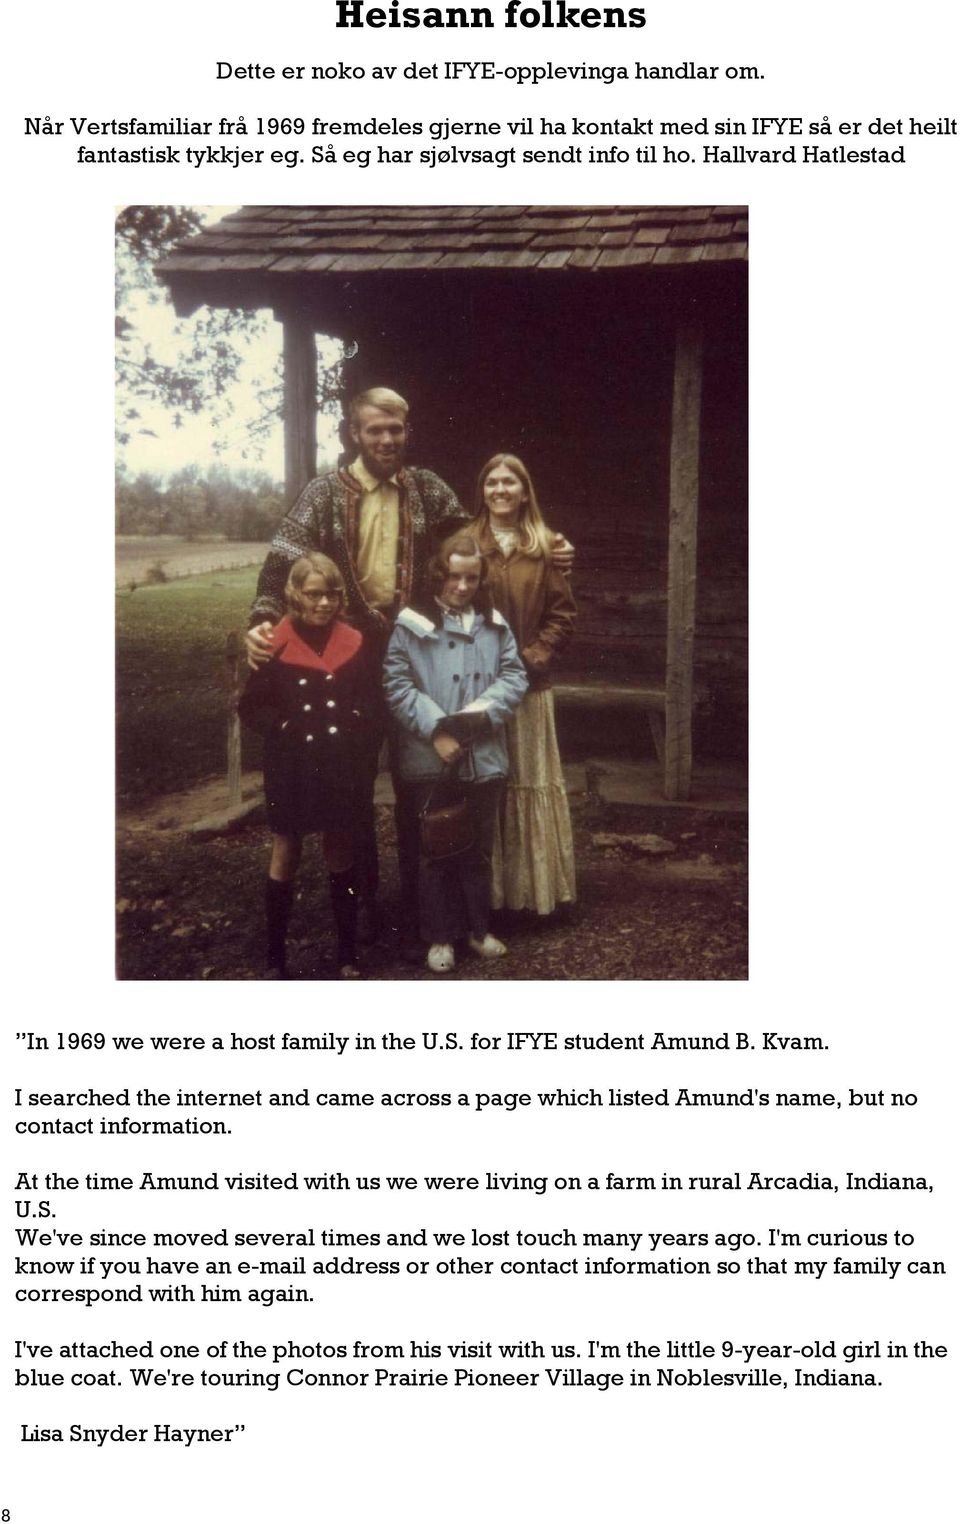 I searched the internet and came across a page which listed Amund's name, but no contact information. At the time Amund visited with us we were living on a farm in rural Arcadia, Indiana, U.S.